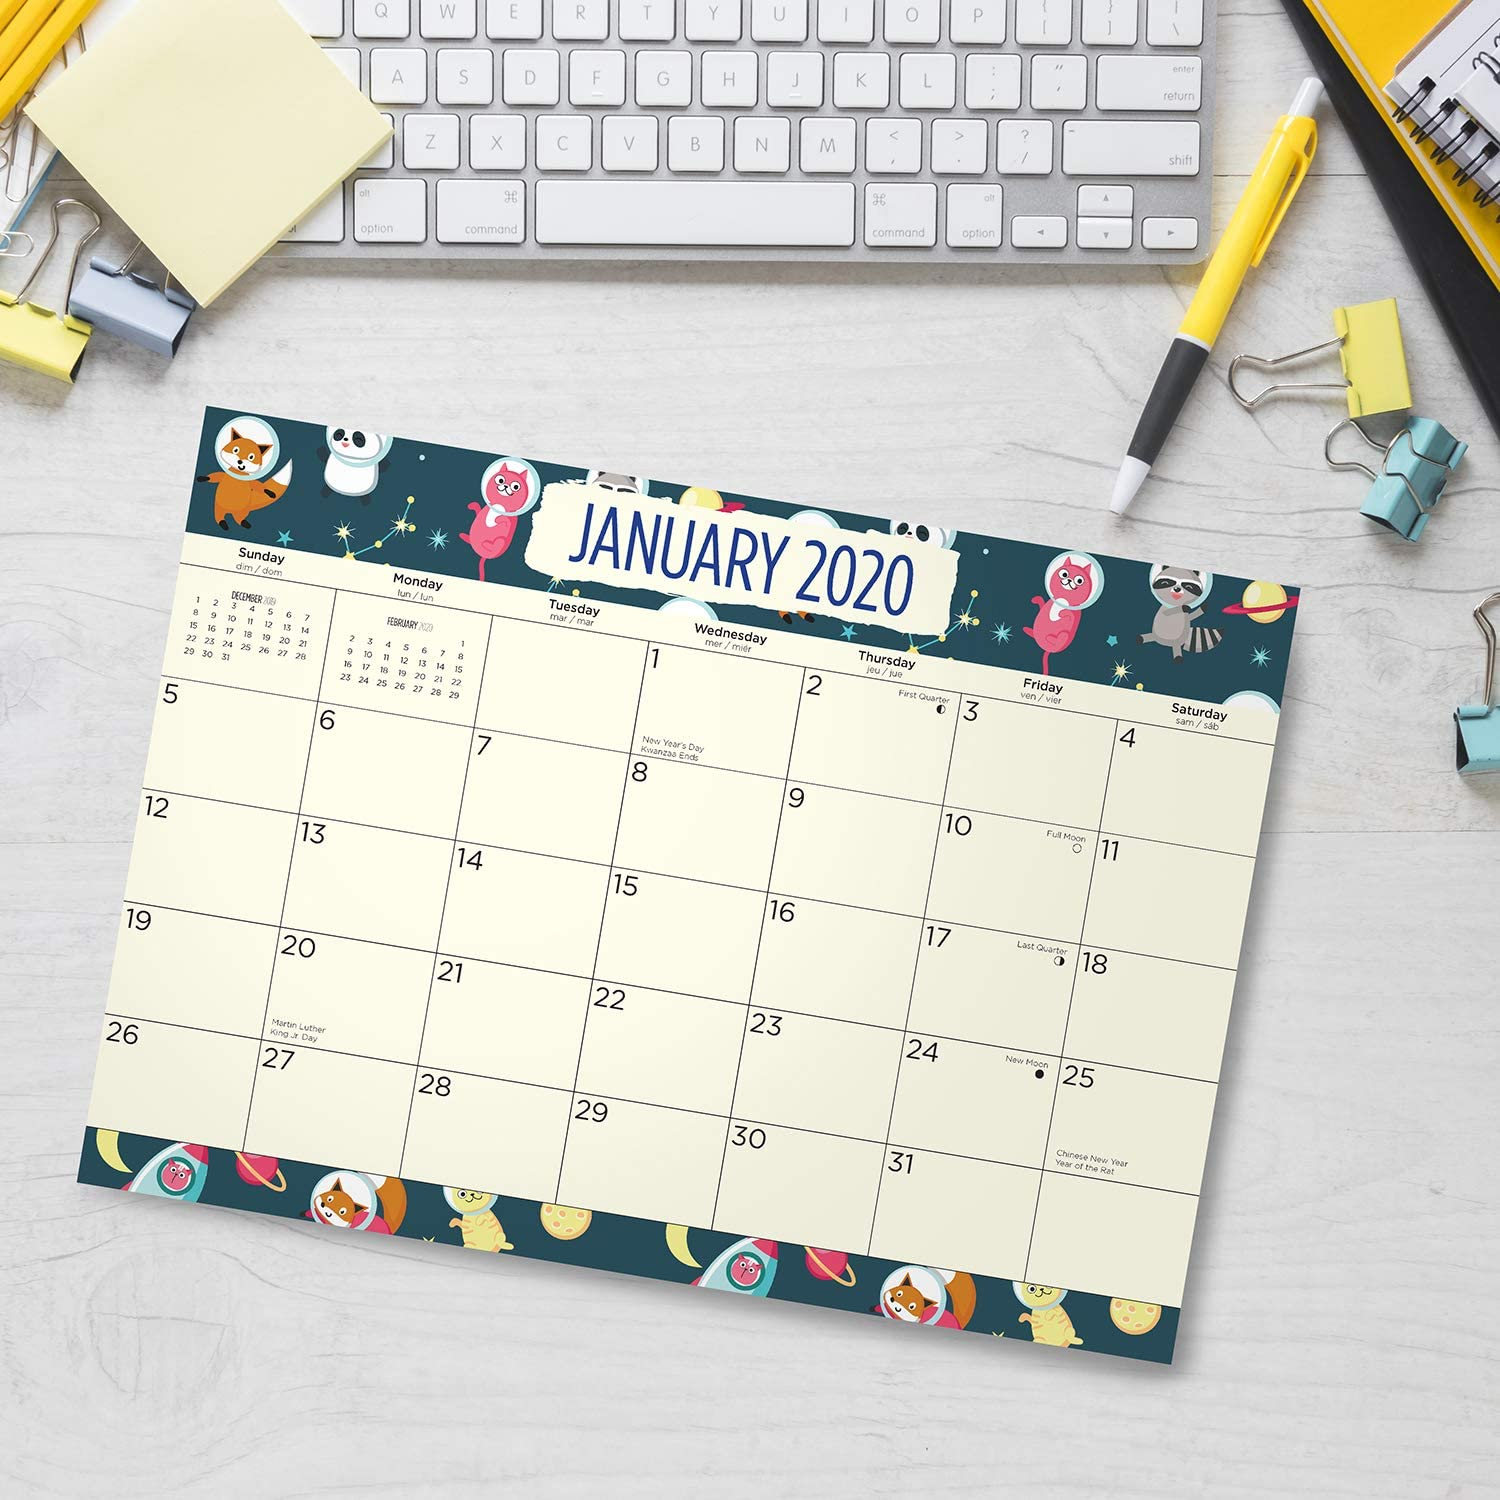 2020 Raindrops Desk Pad Office Calendar by Bright Day Cute Colorful Planner 16 Month 15.5 x 11 Inch